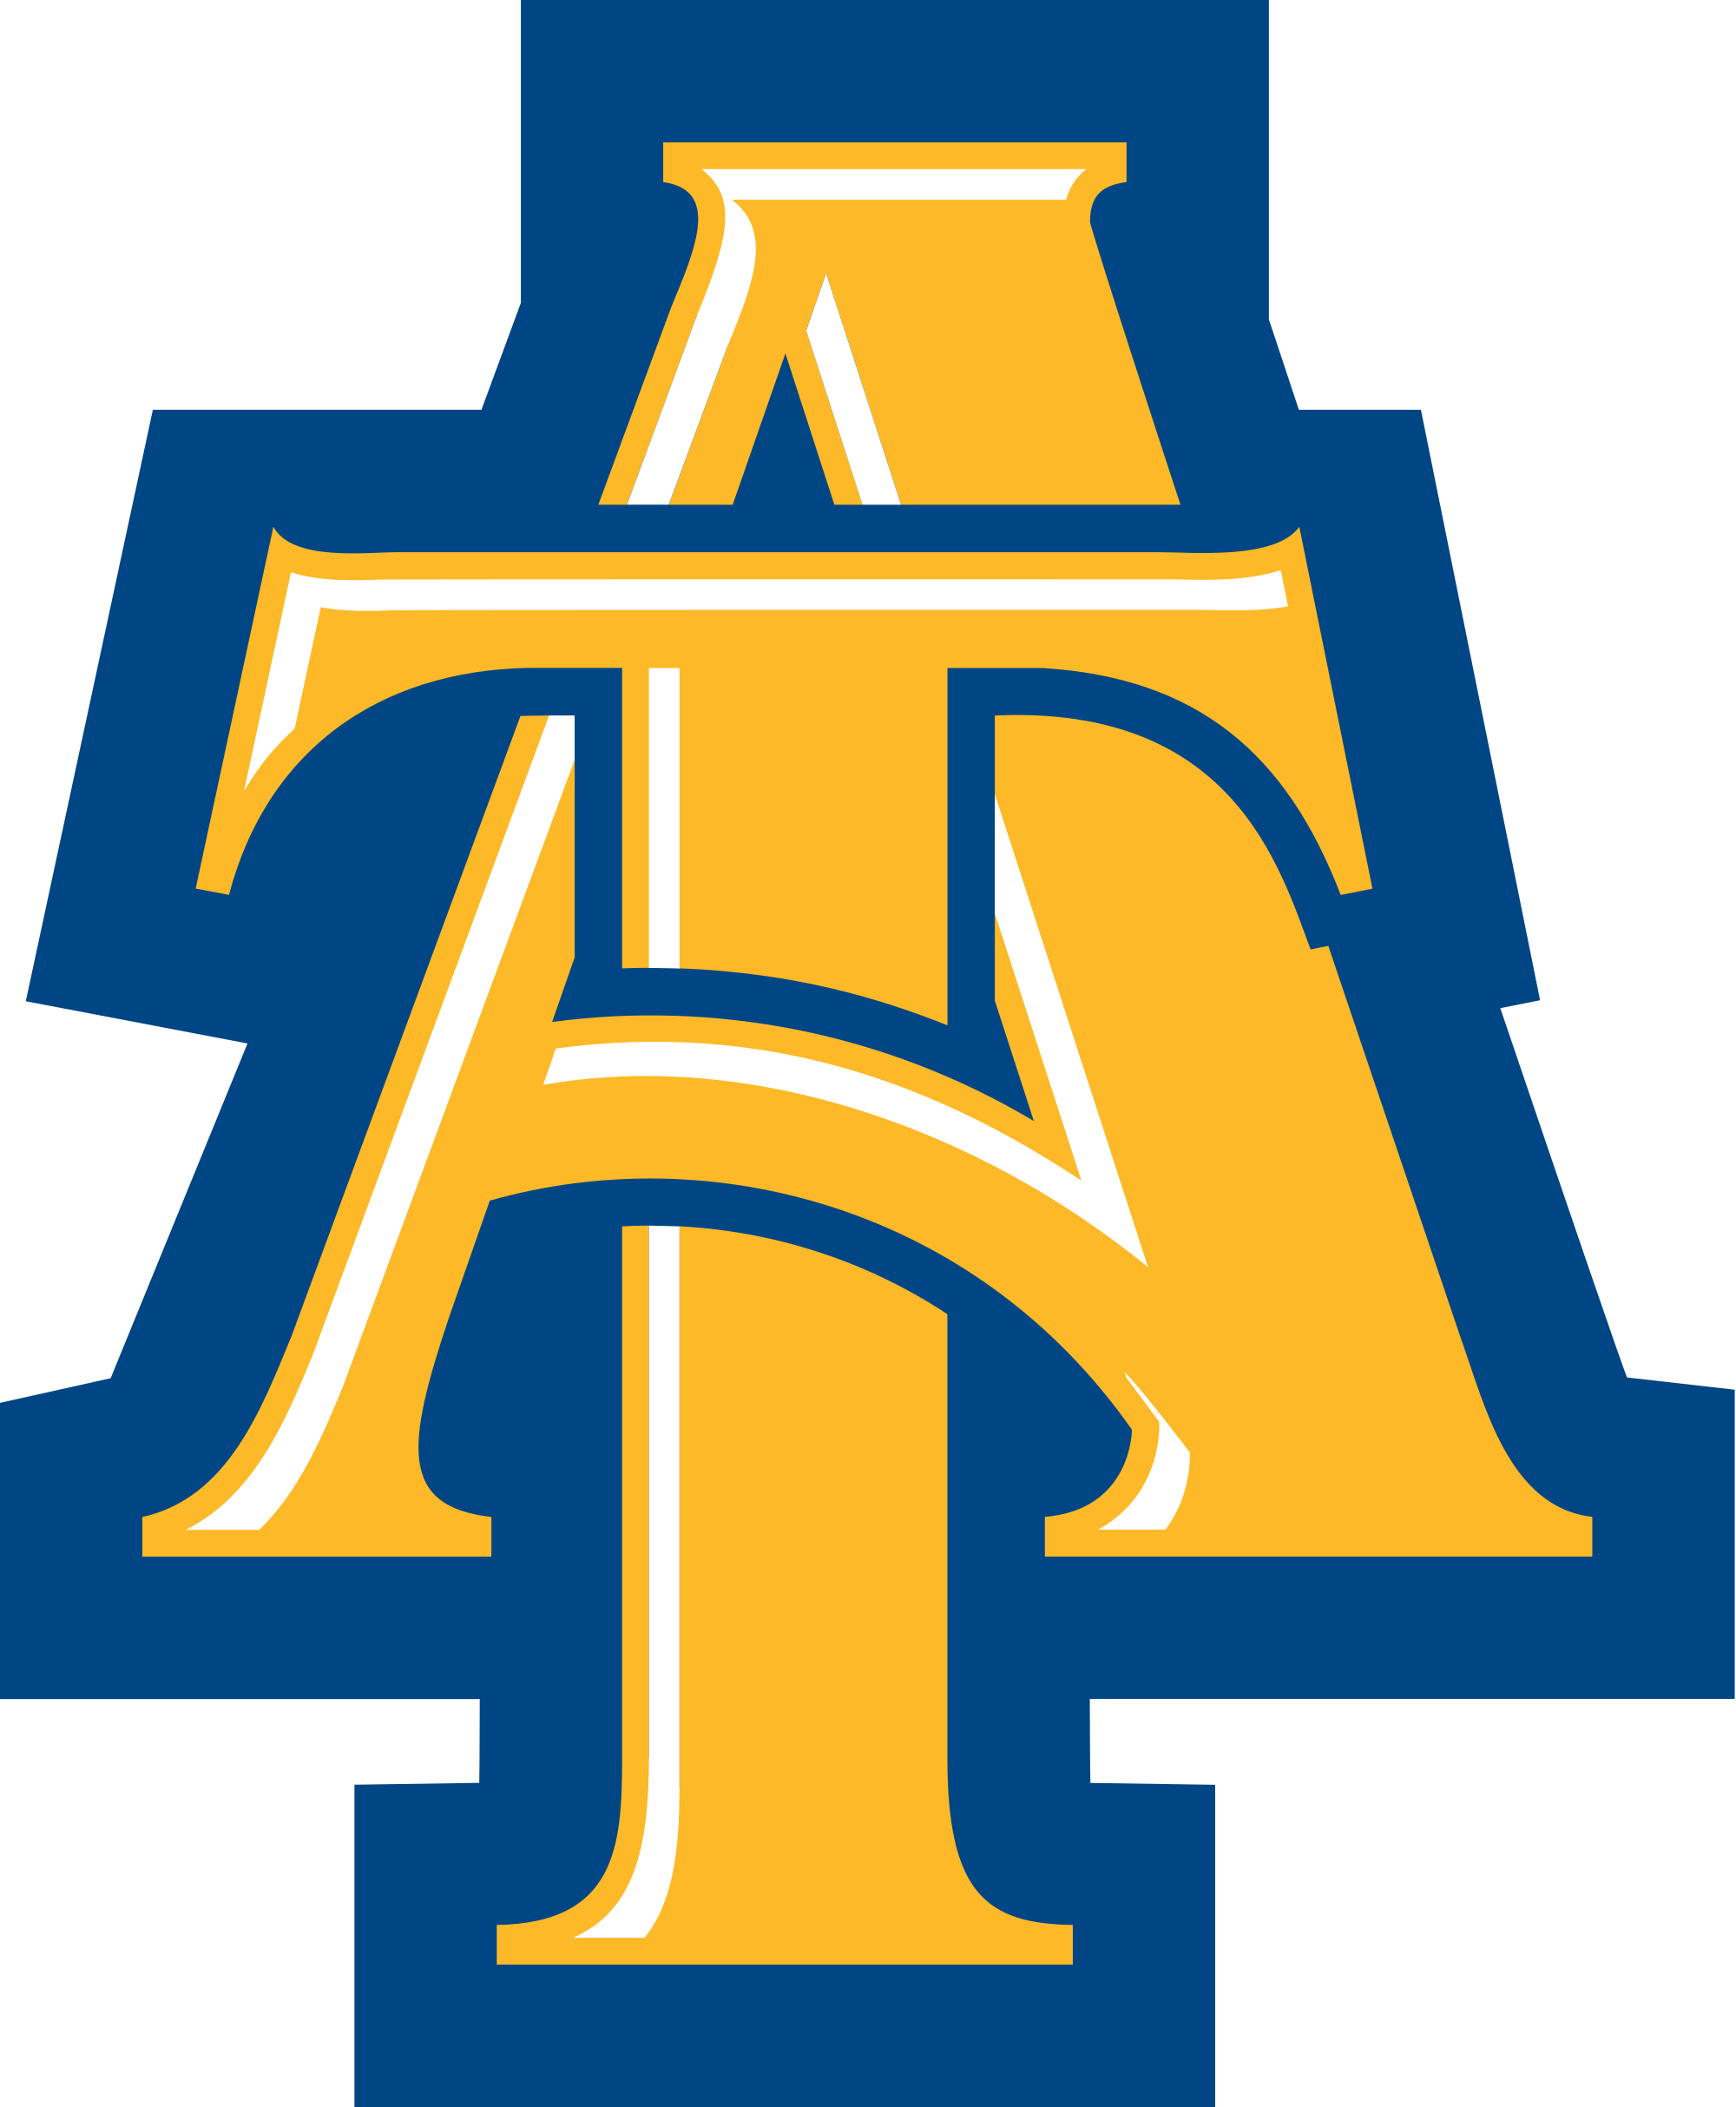 north carolina a&t state university logo png